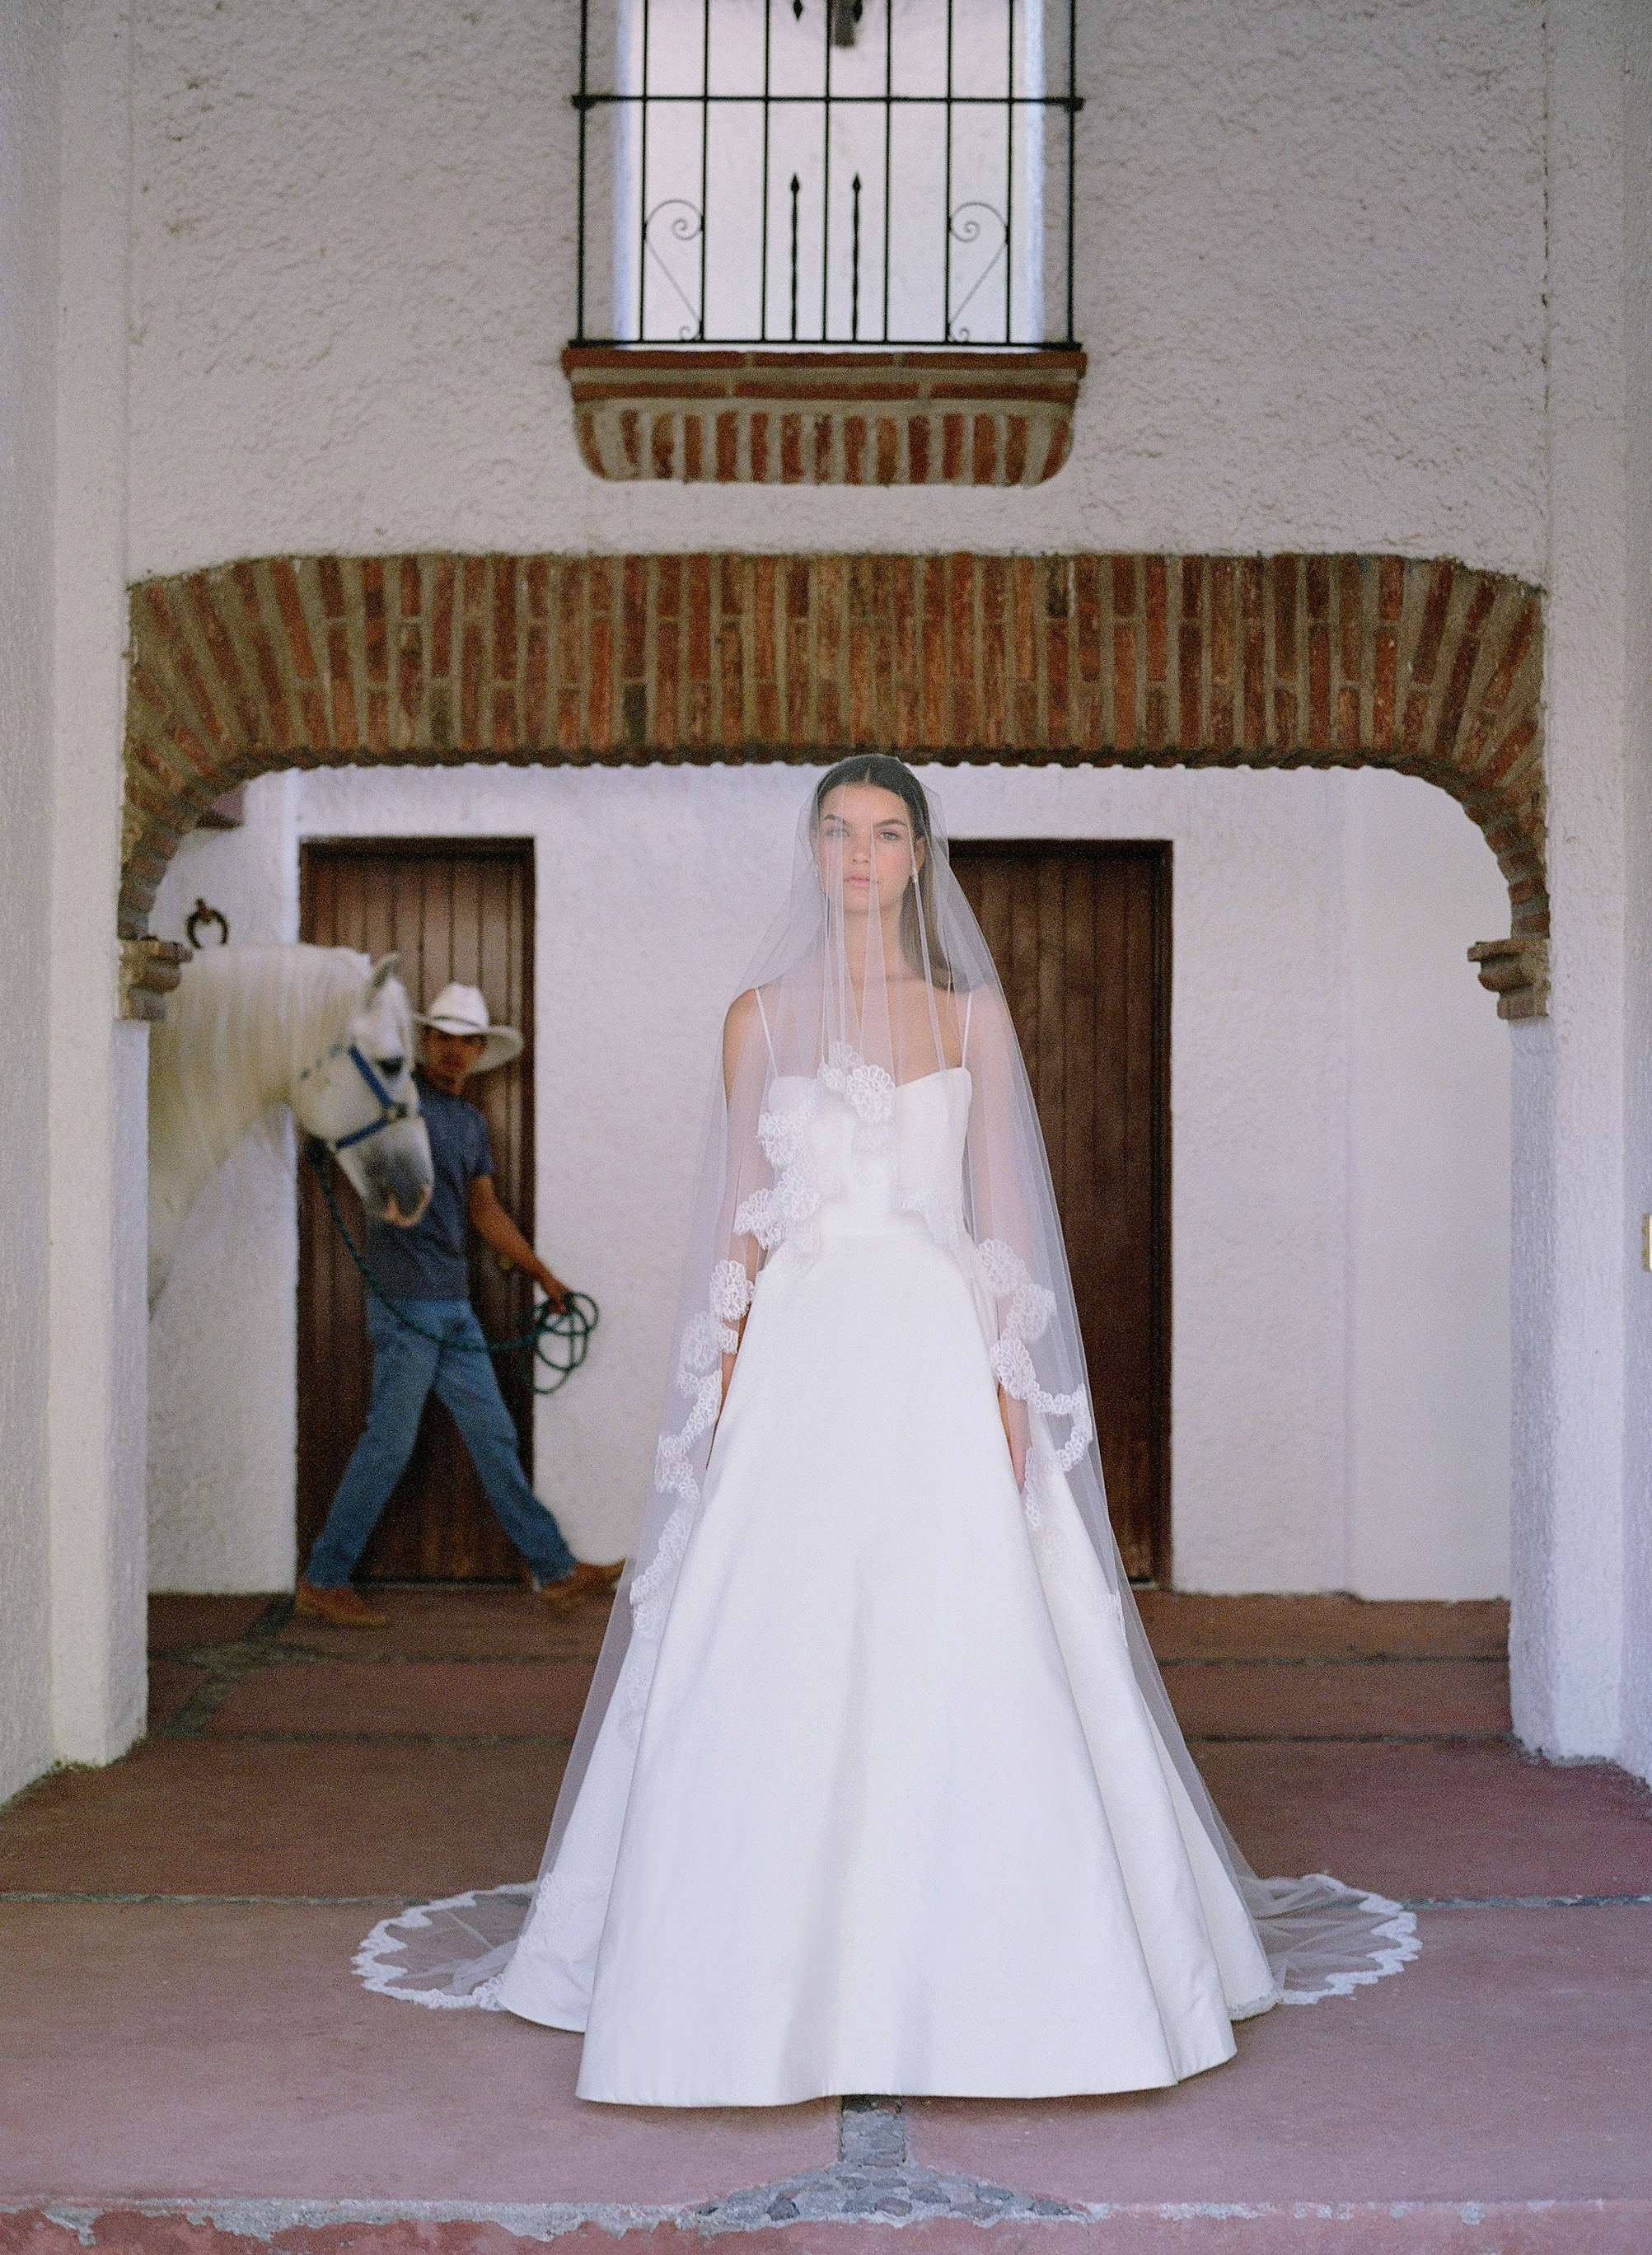 #KleinfeldEditorial We took our newest wedding dresses, bridesmaids dresses and flower girl dresses from Kleinfeld Bridal and Kleinfeld Bridal Party down to the Hacienda San Antonio in Colima Mexico for a stunning editorial photoshoot—here is all the destination wedding venue inspiration you need!